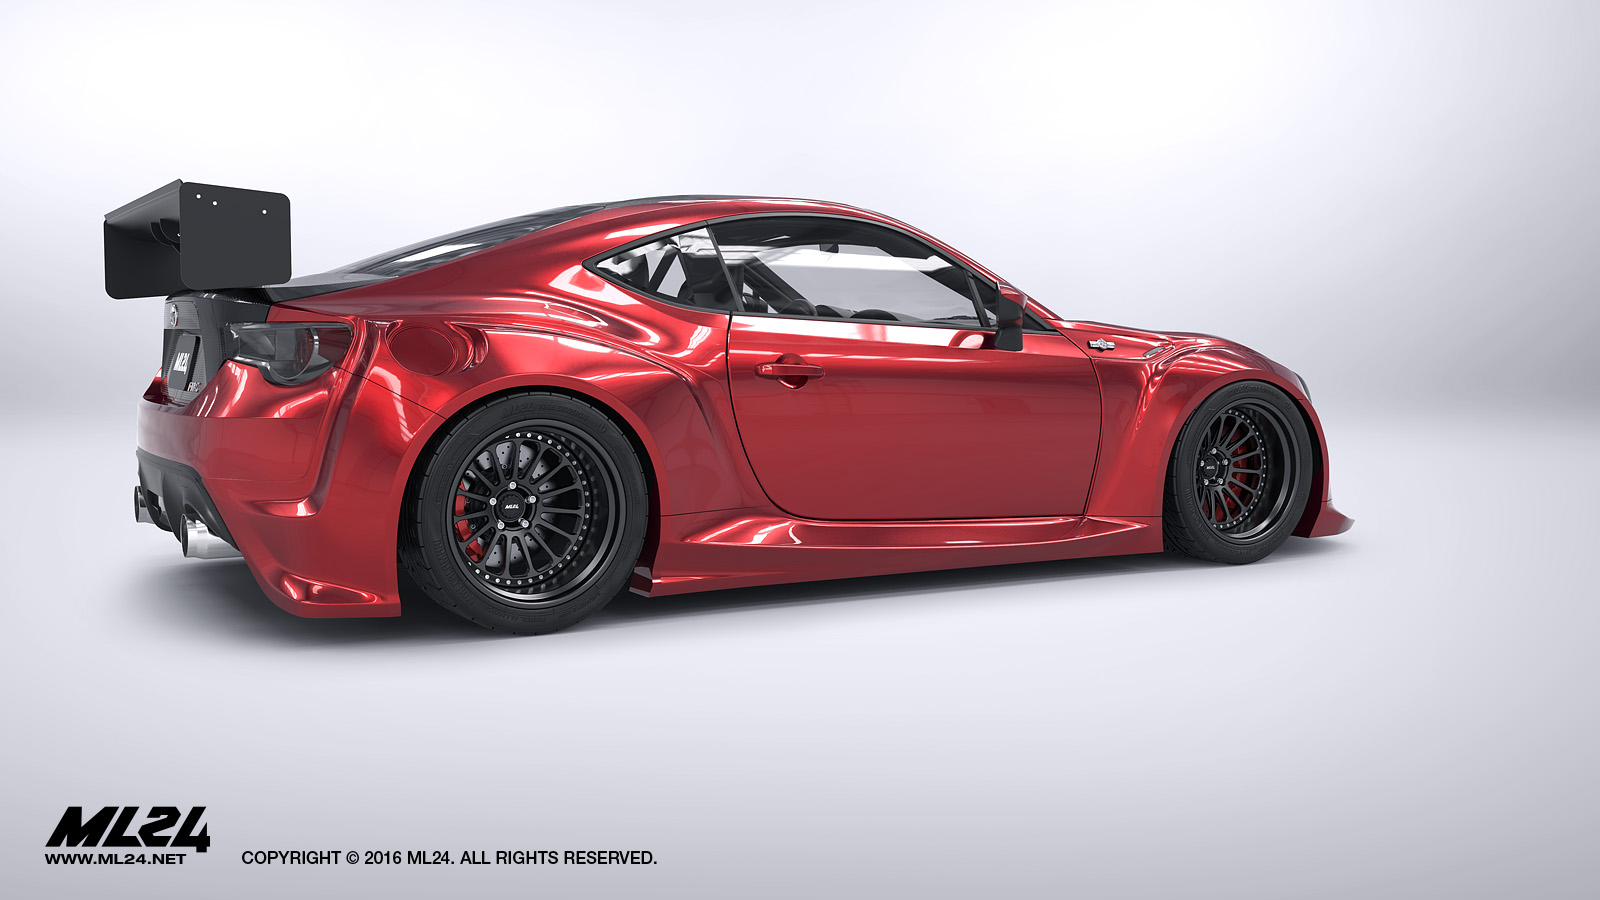 ml24 scion fr s toyota gt86 version 2 wide body kit automotive design prototyping and body kits. Black Bedroom Furniture Sets. Home Design Ideas